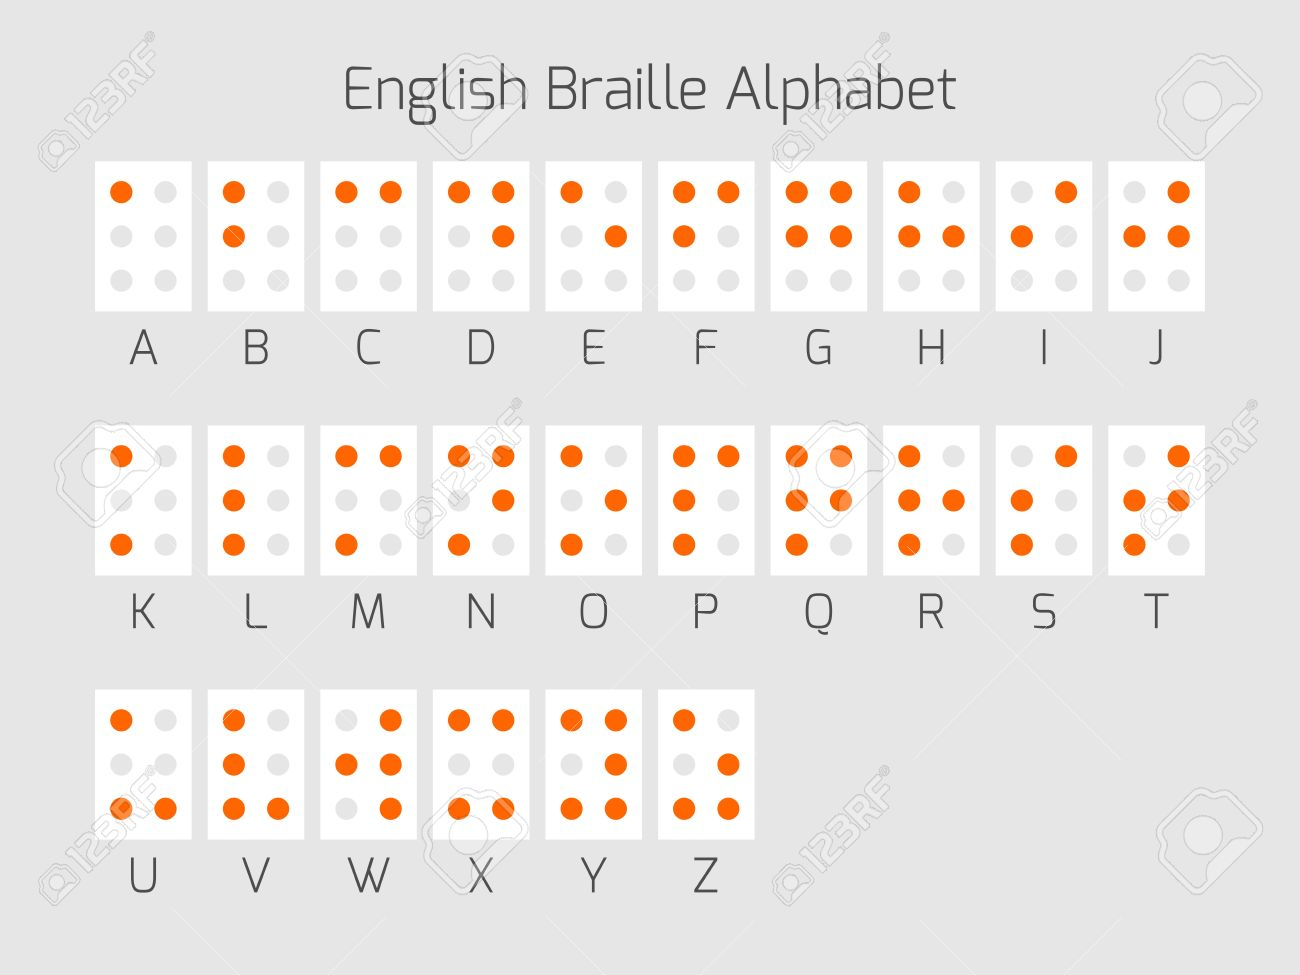 https://previews.123rf.com/images/pytyczech/pytyczech1602/pytyczech160200100/53888135-braille-alphabet-letters-braille-is-a-tactile-writing-system-used-by-people-who-are-blind-or-visuall.jpg